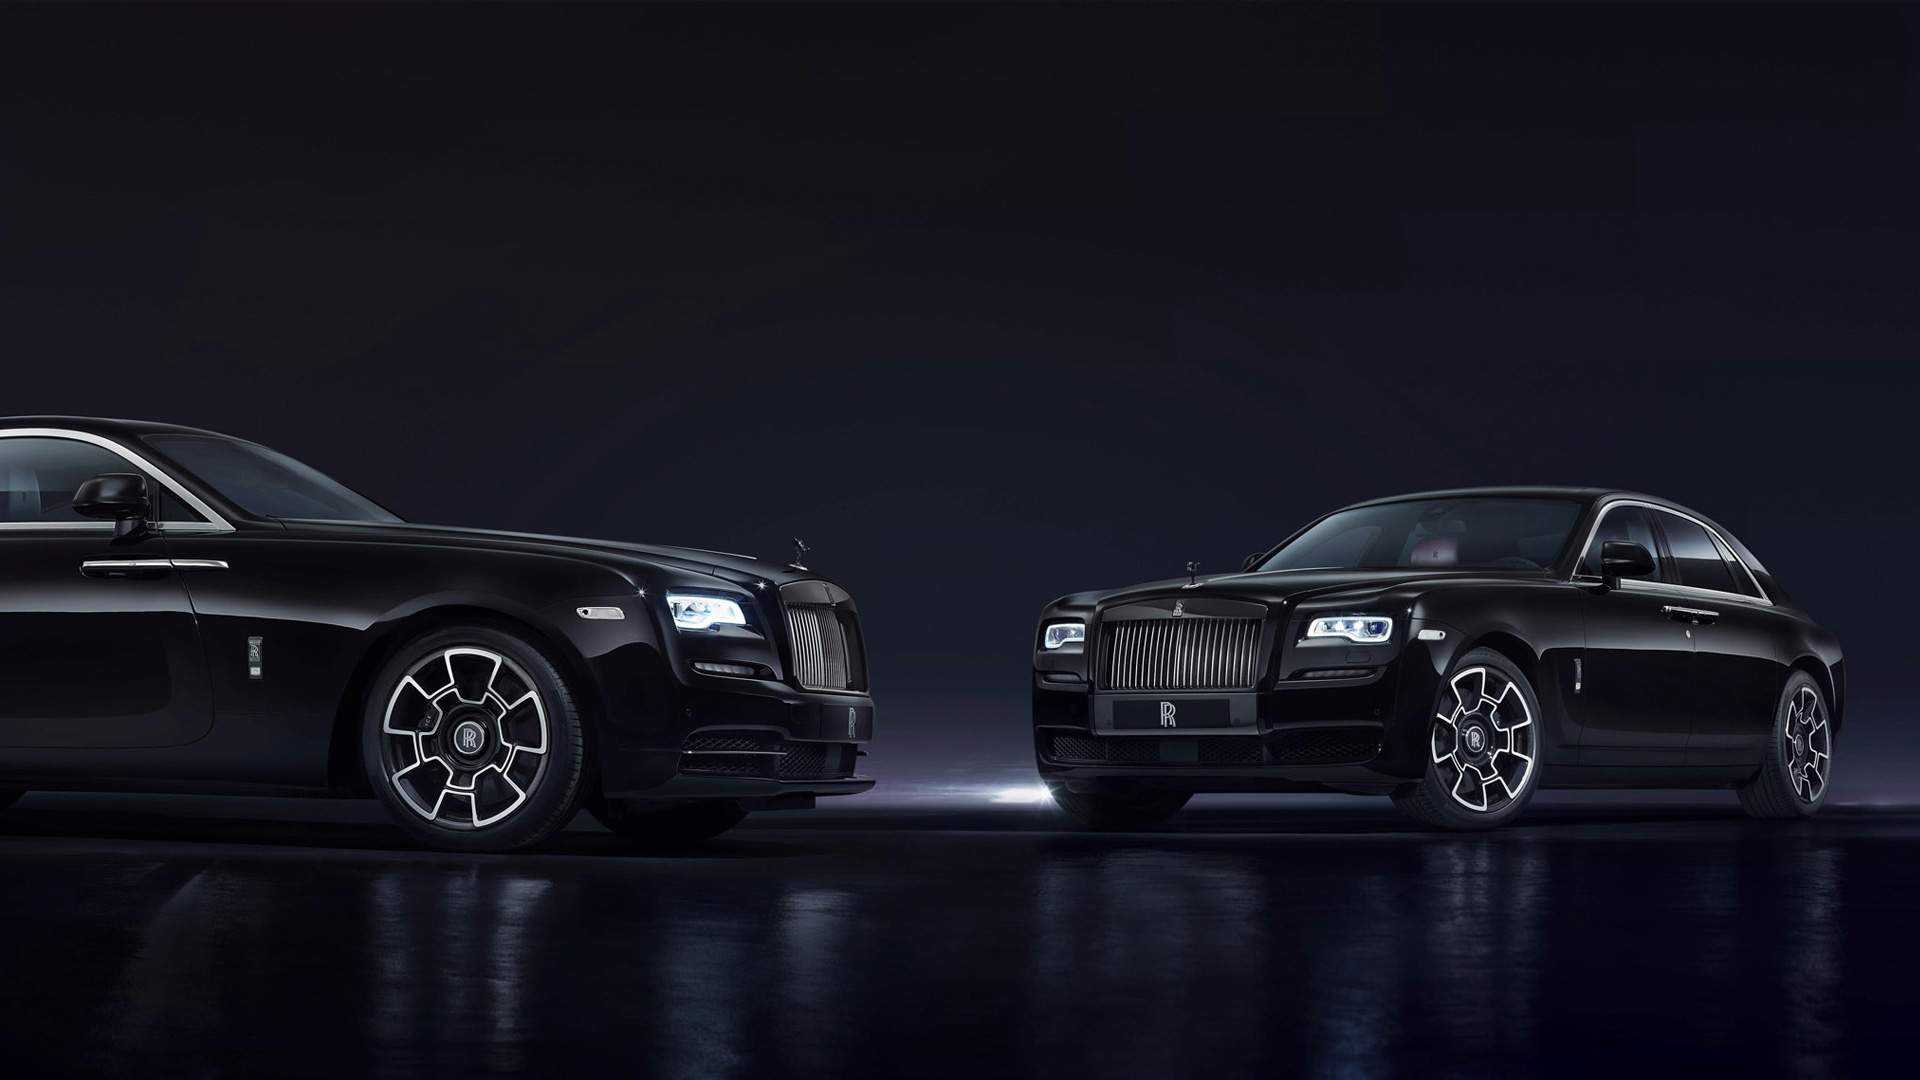 rolls royce ghost wraith black badge 2016 wallpaper | hd car